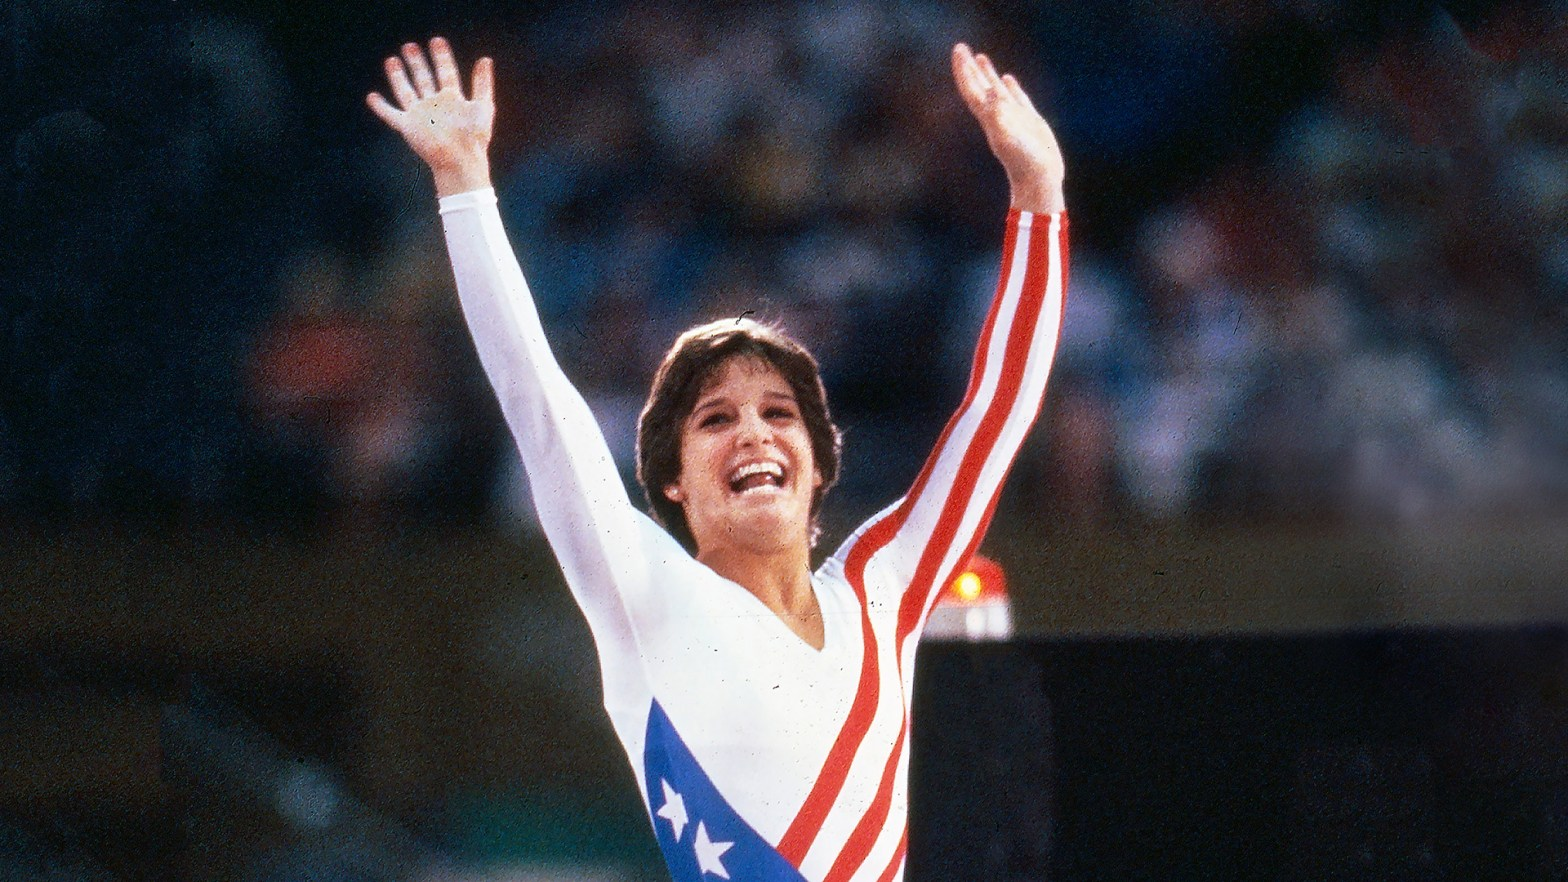 Dreams Goals Visualization Mary Lou Retton Olympic gold